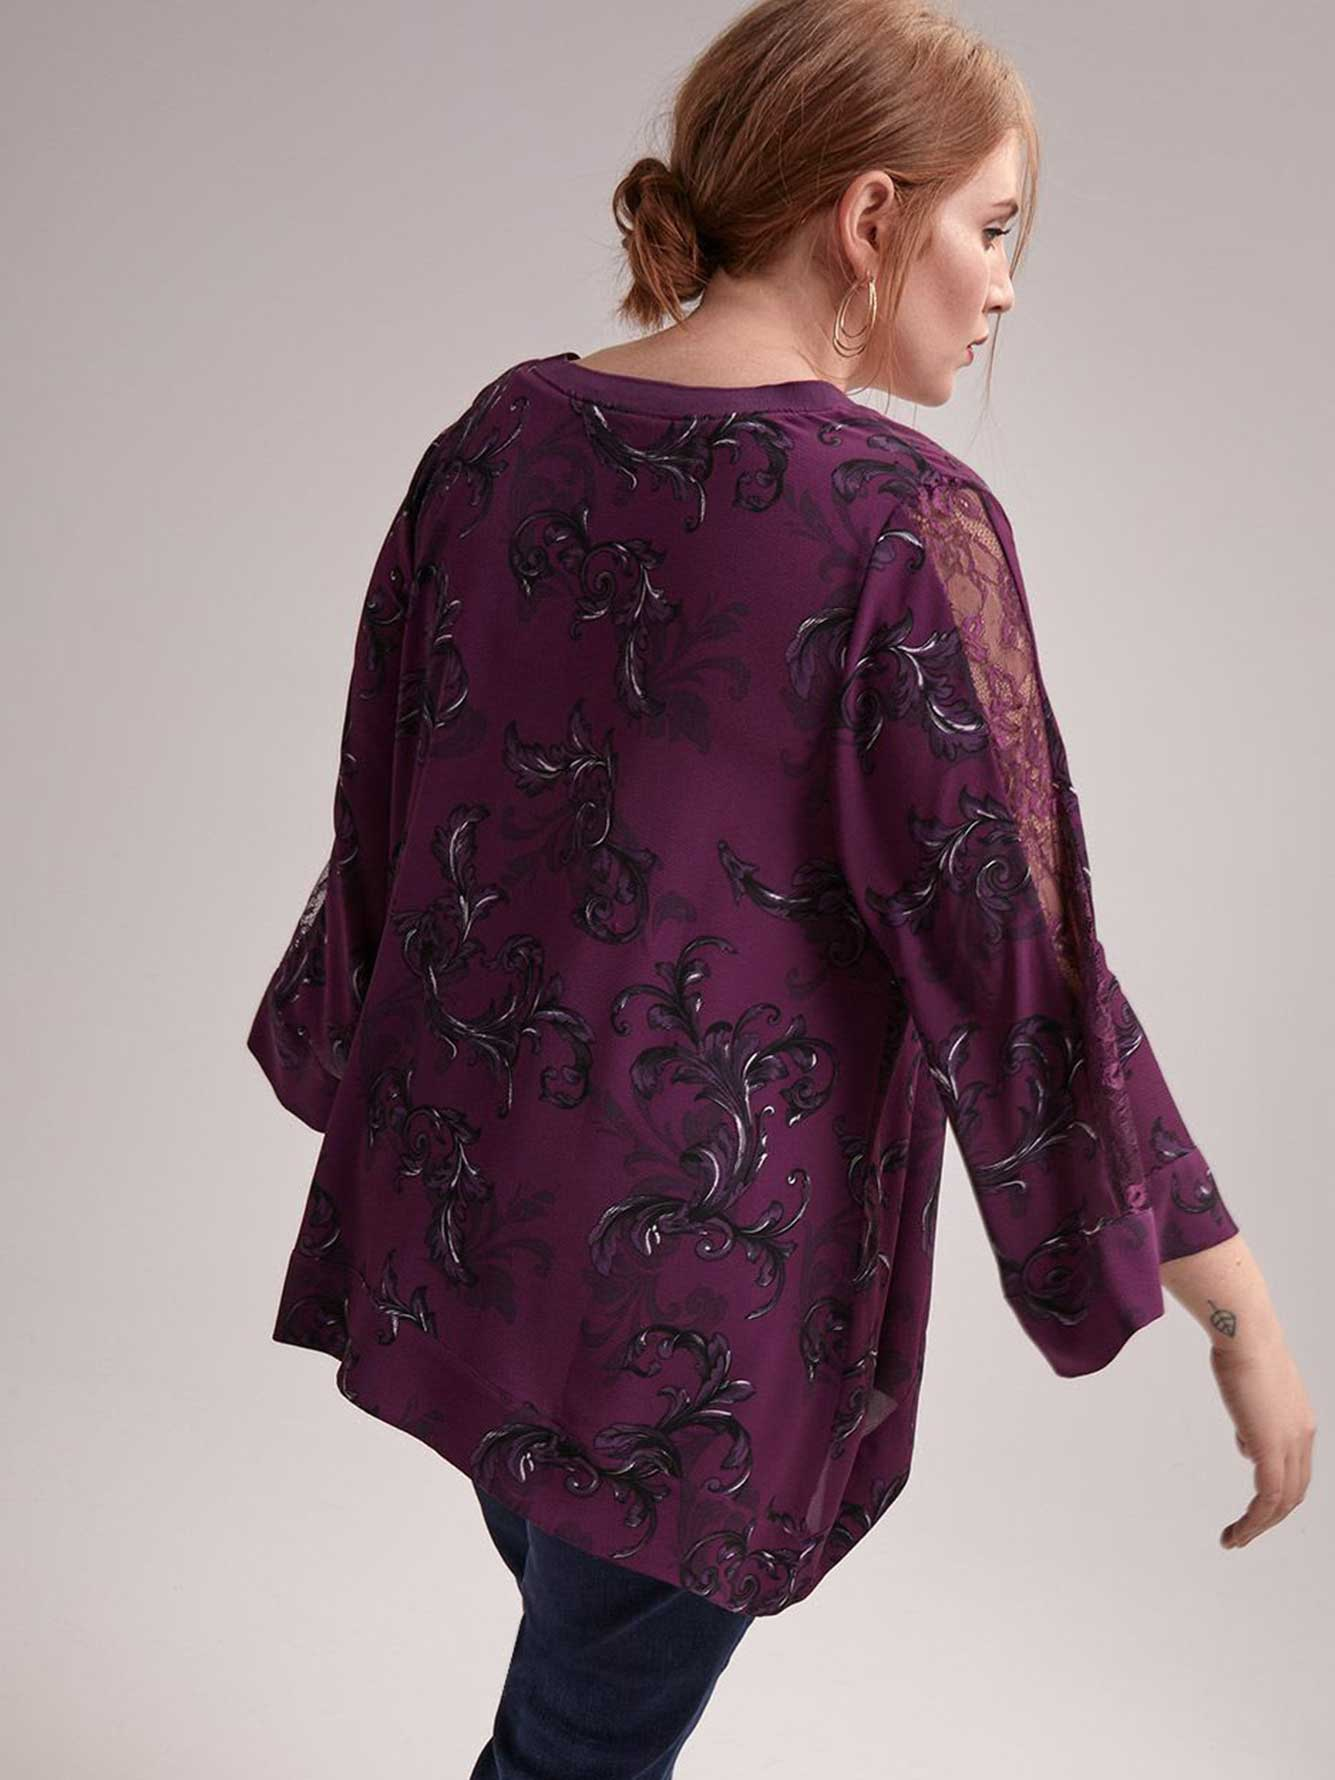 Shark-Bite Printed Blouse with Lace Embellished Sleeve - L&L